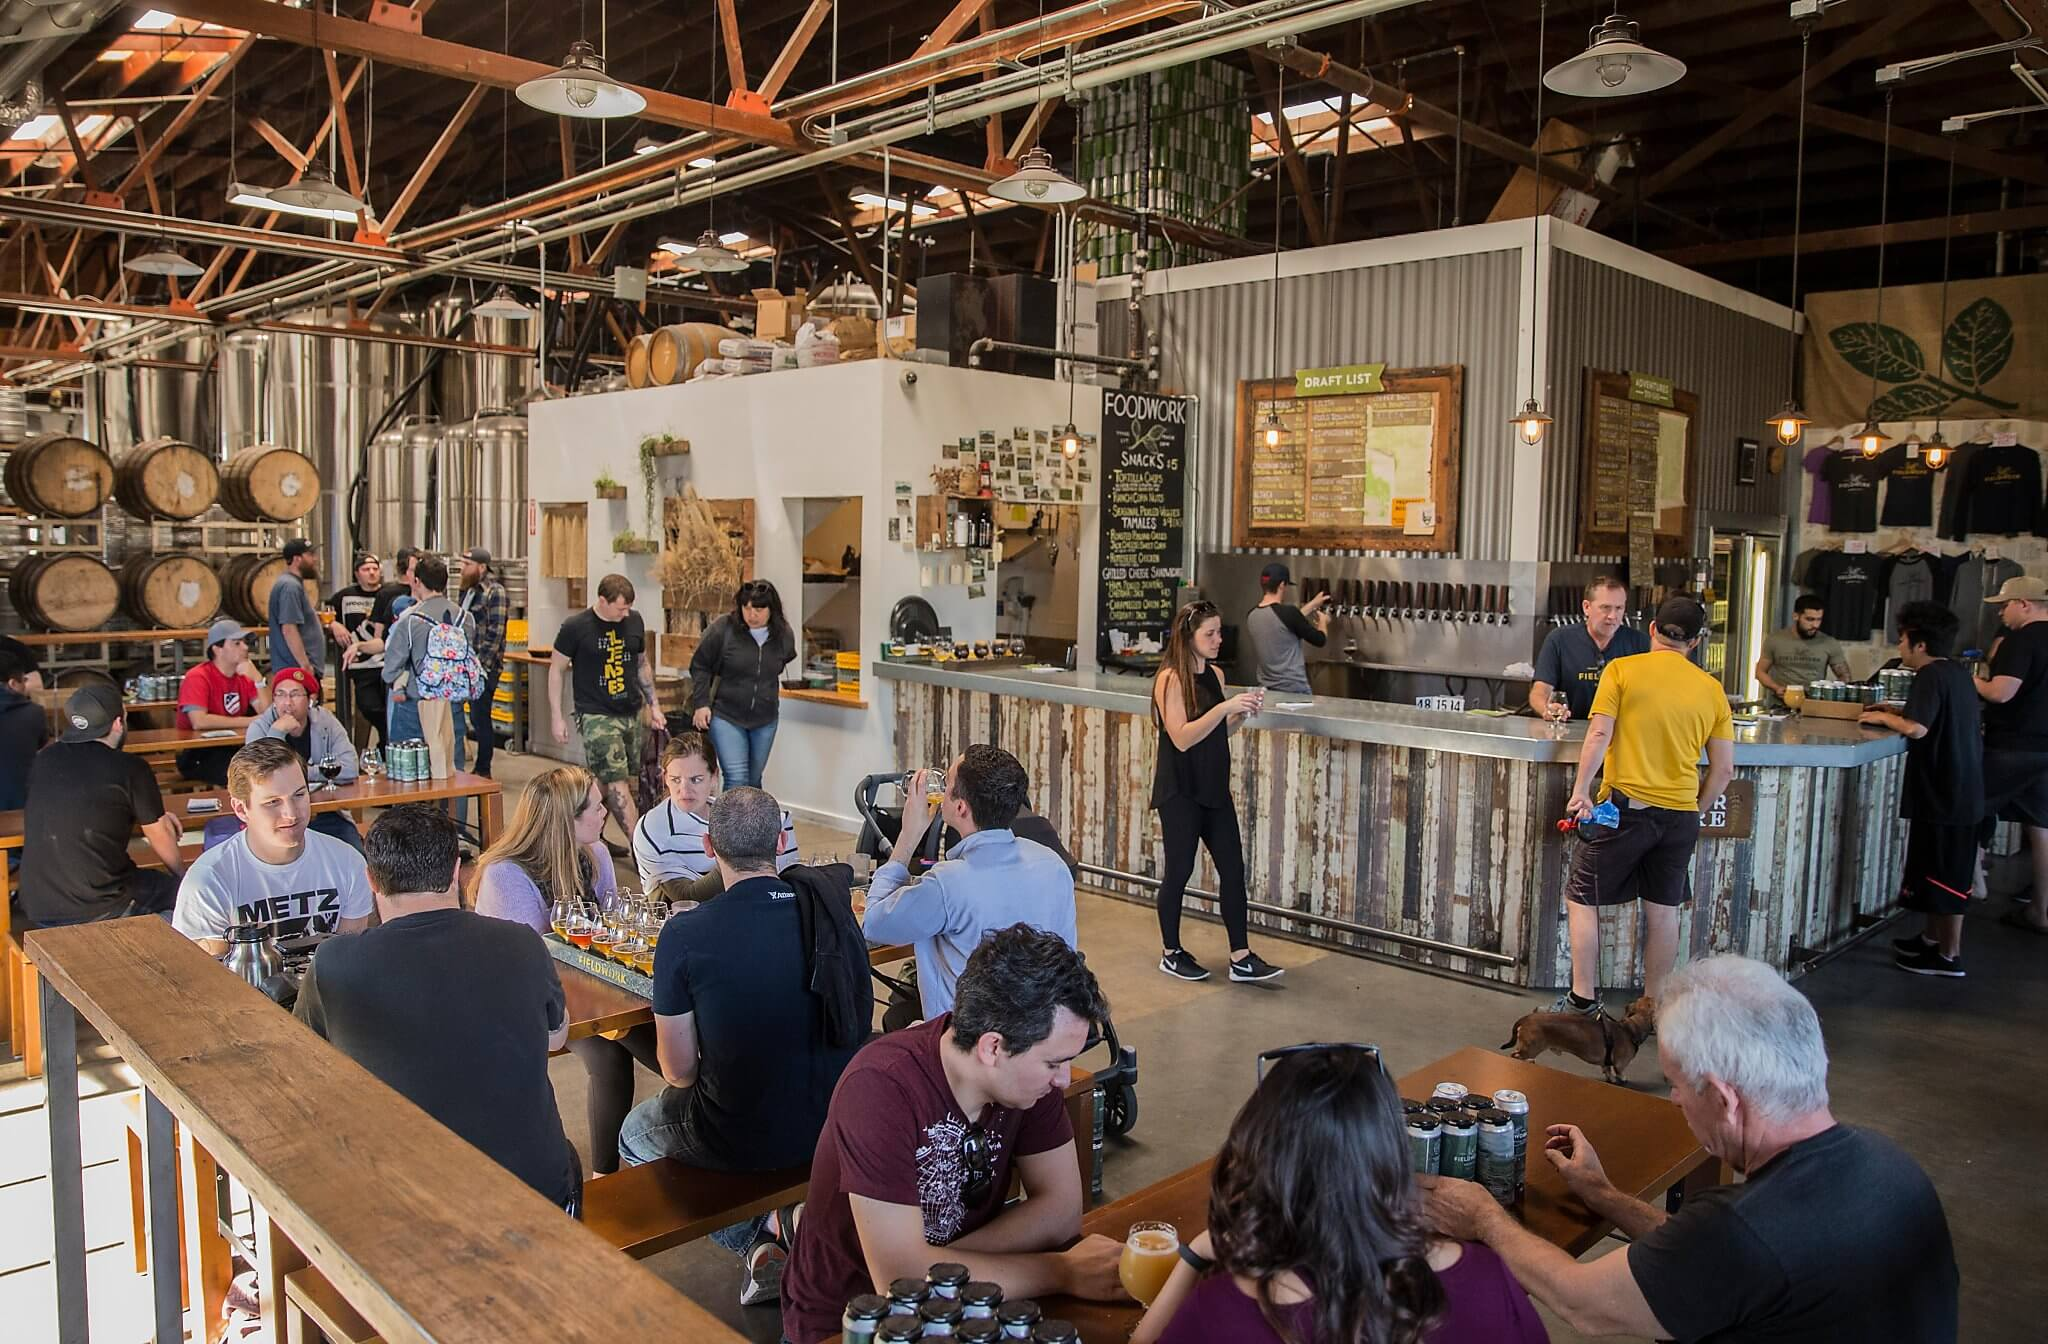 Inside the taproom at the Fieldwork Brewing Company taproom in Berkeley, California